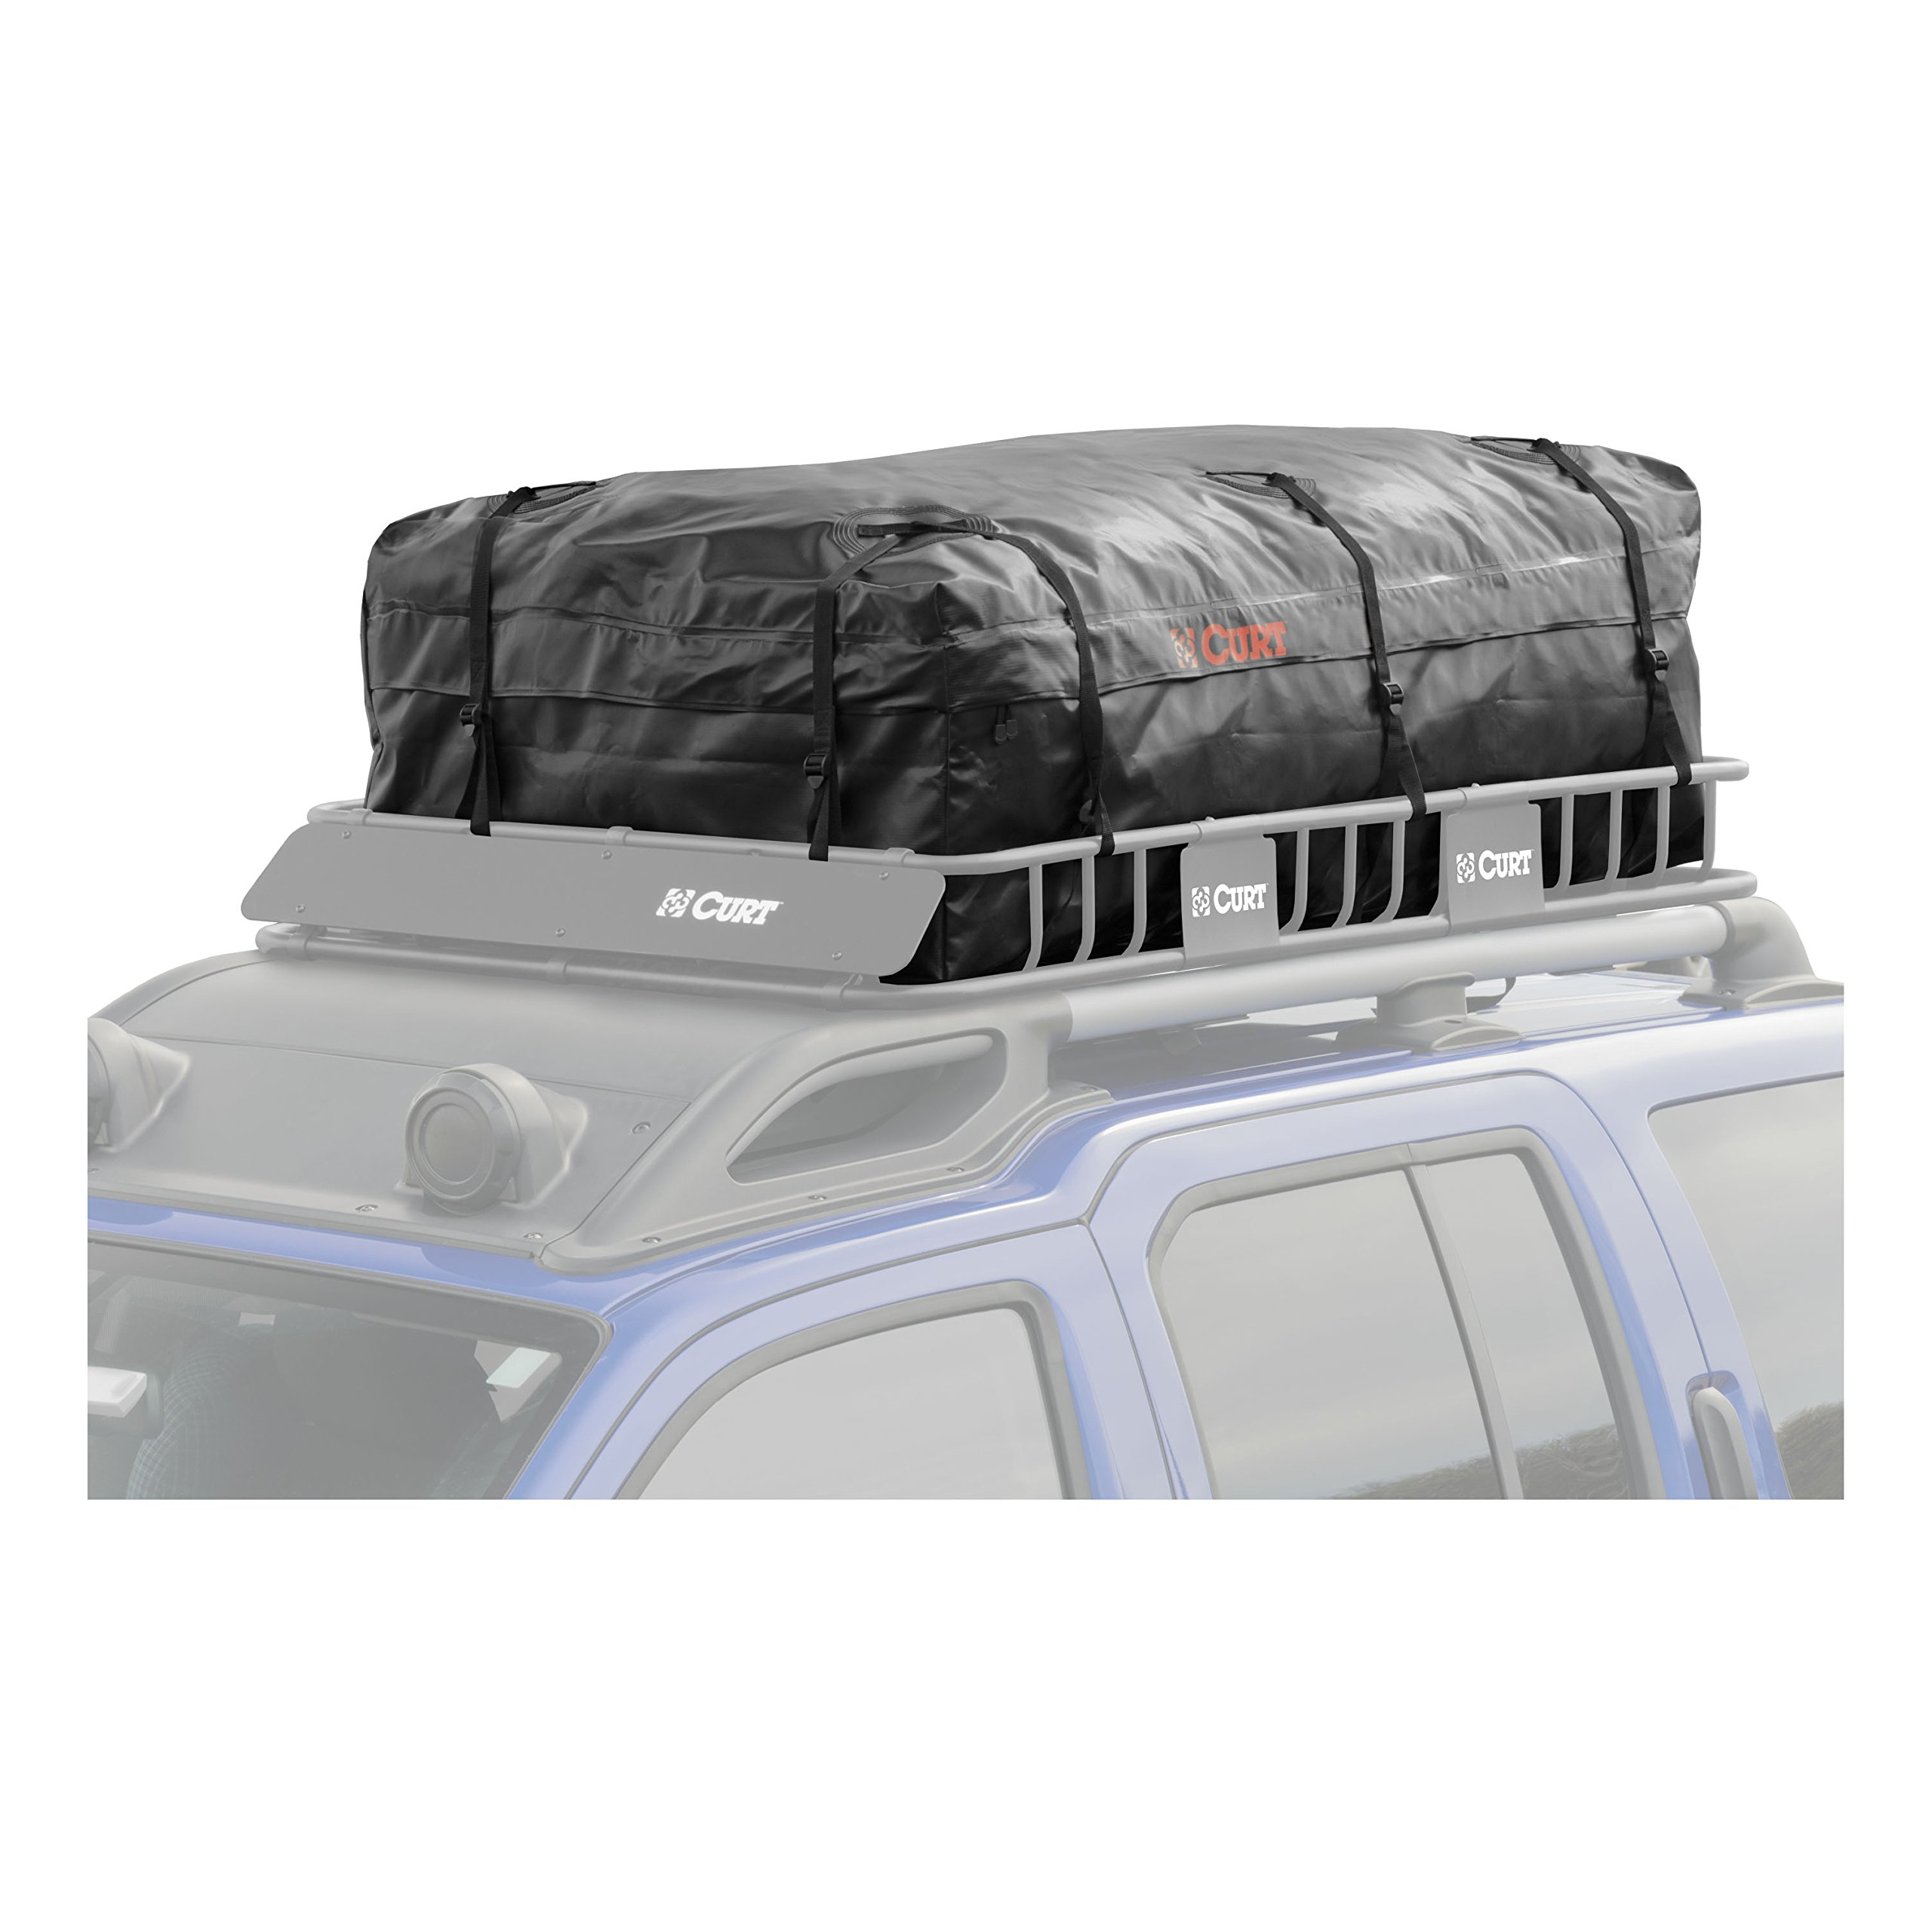 CURT 18221 Extended Roof Rack Cargo Bag by Curt Manufacturing (Image #6)